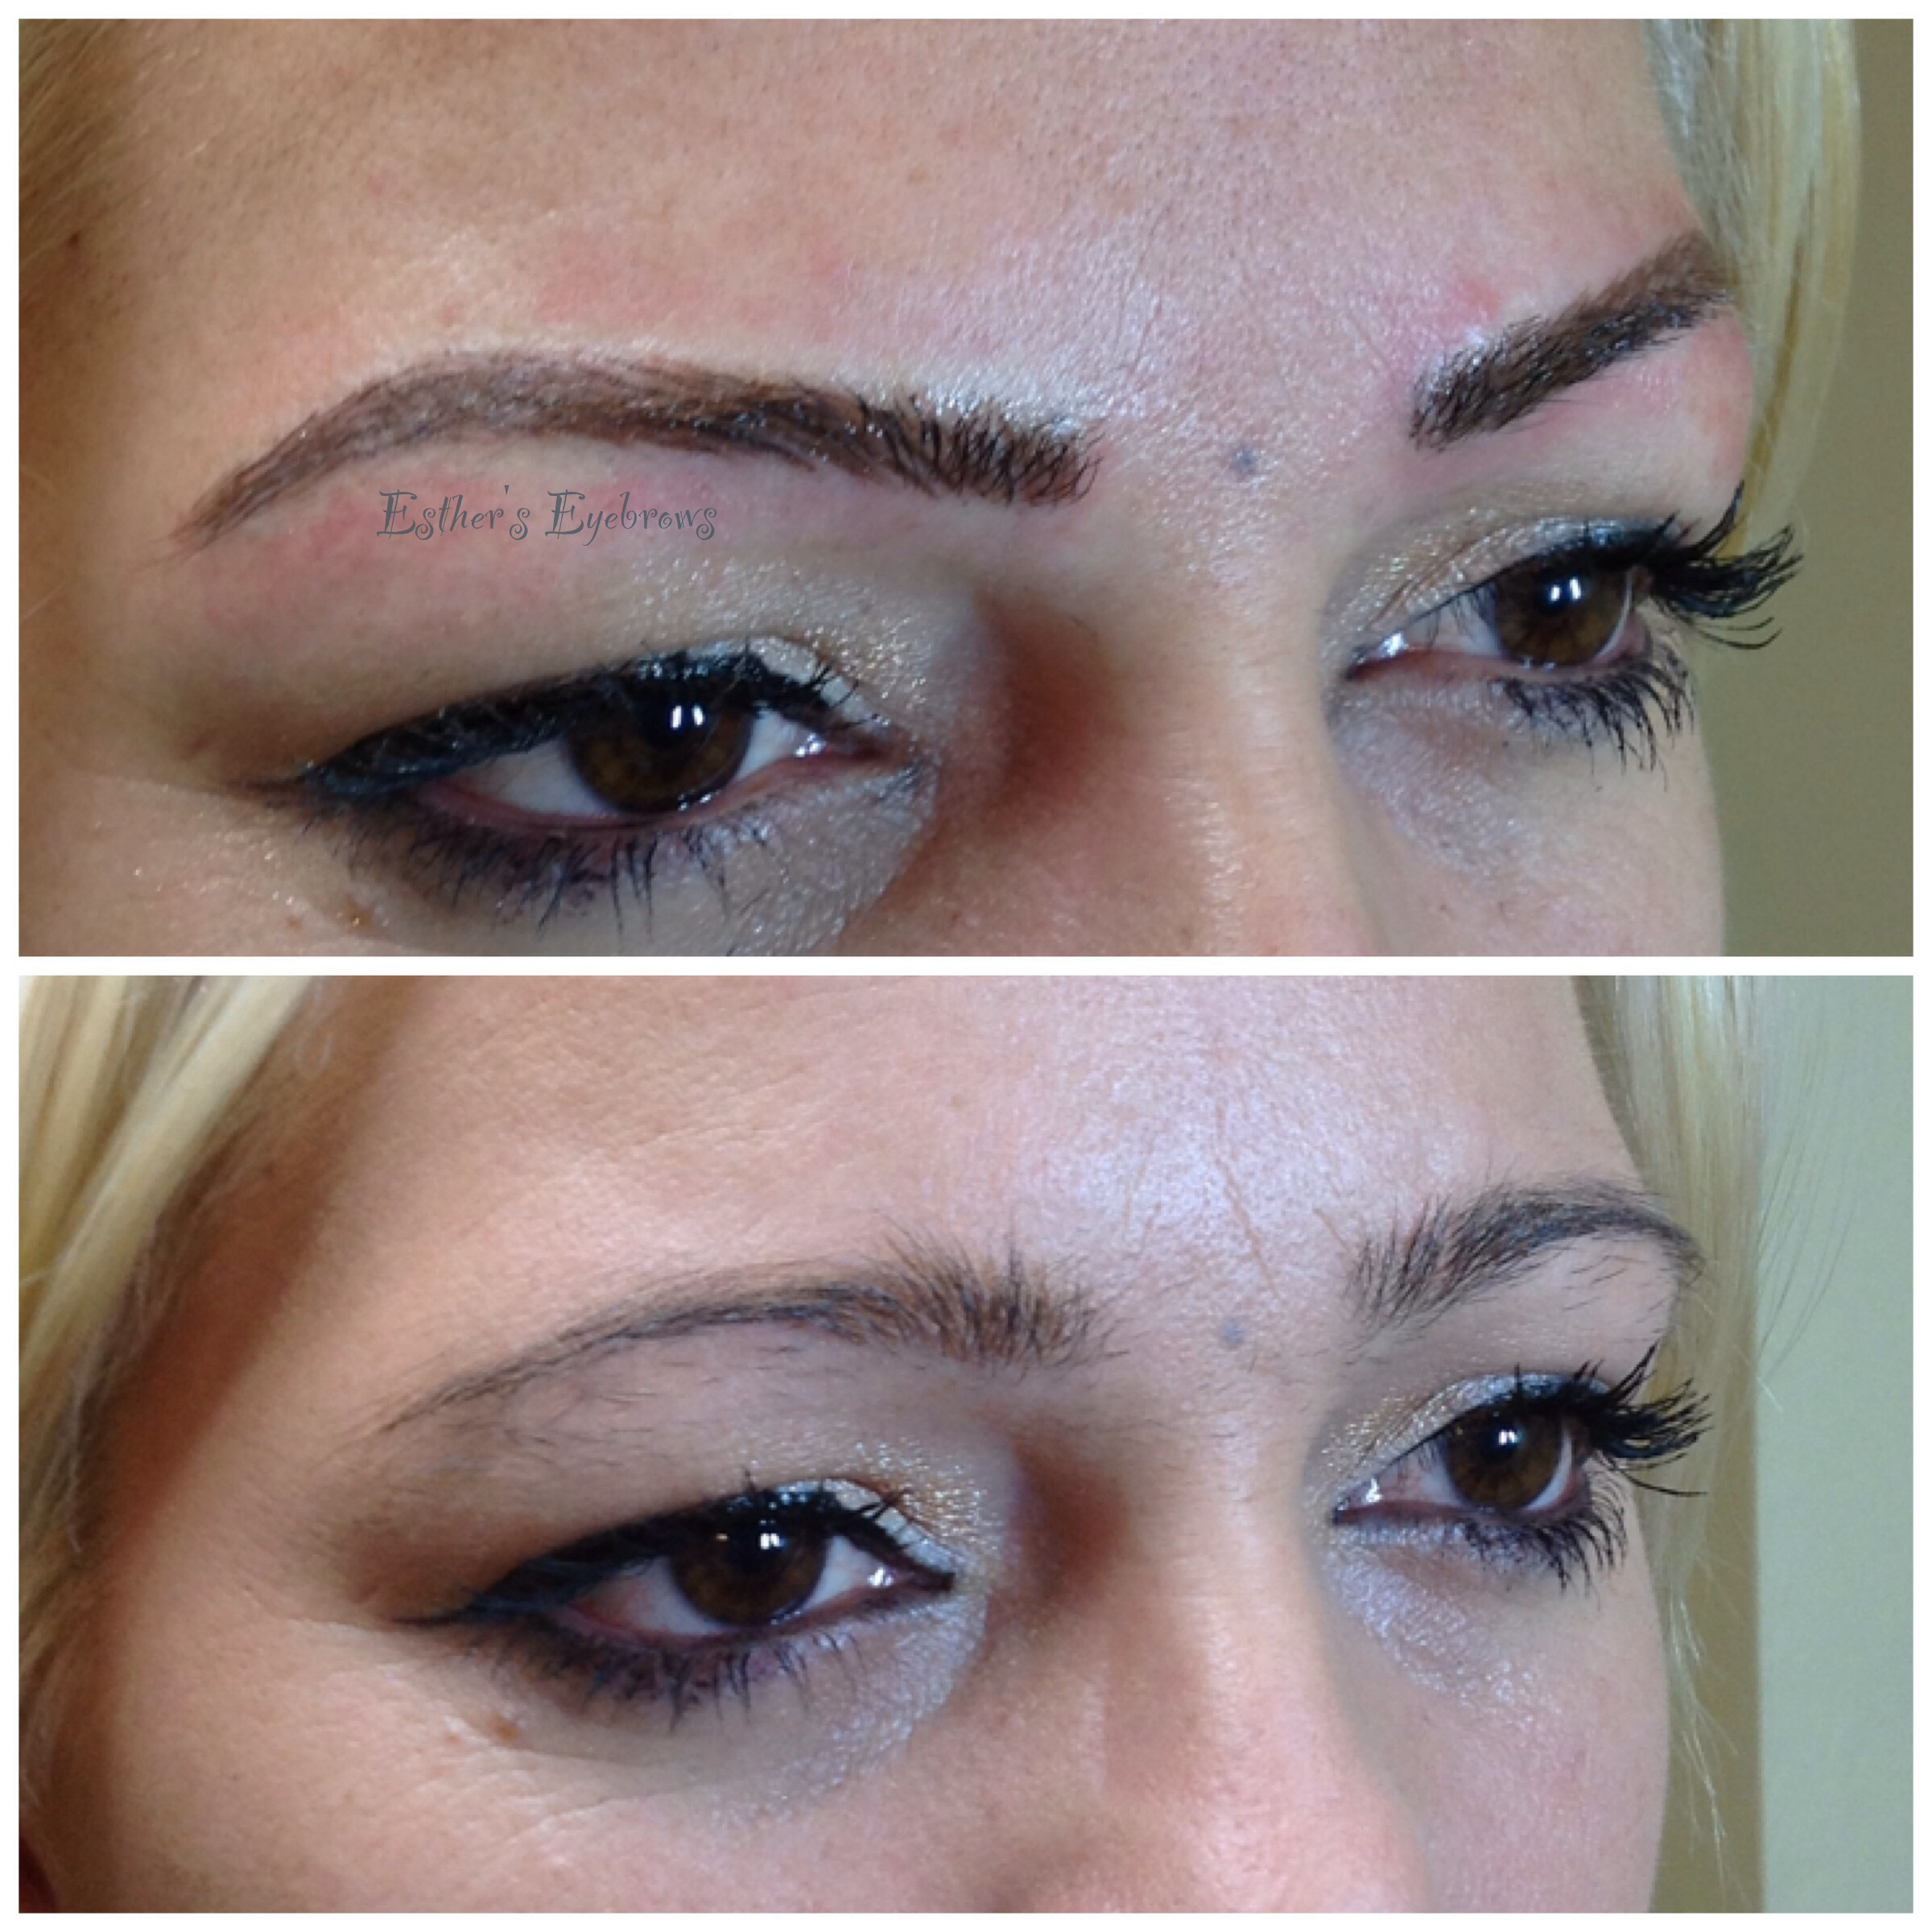 Esther's Eyebrows & Skincare, Naples FL